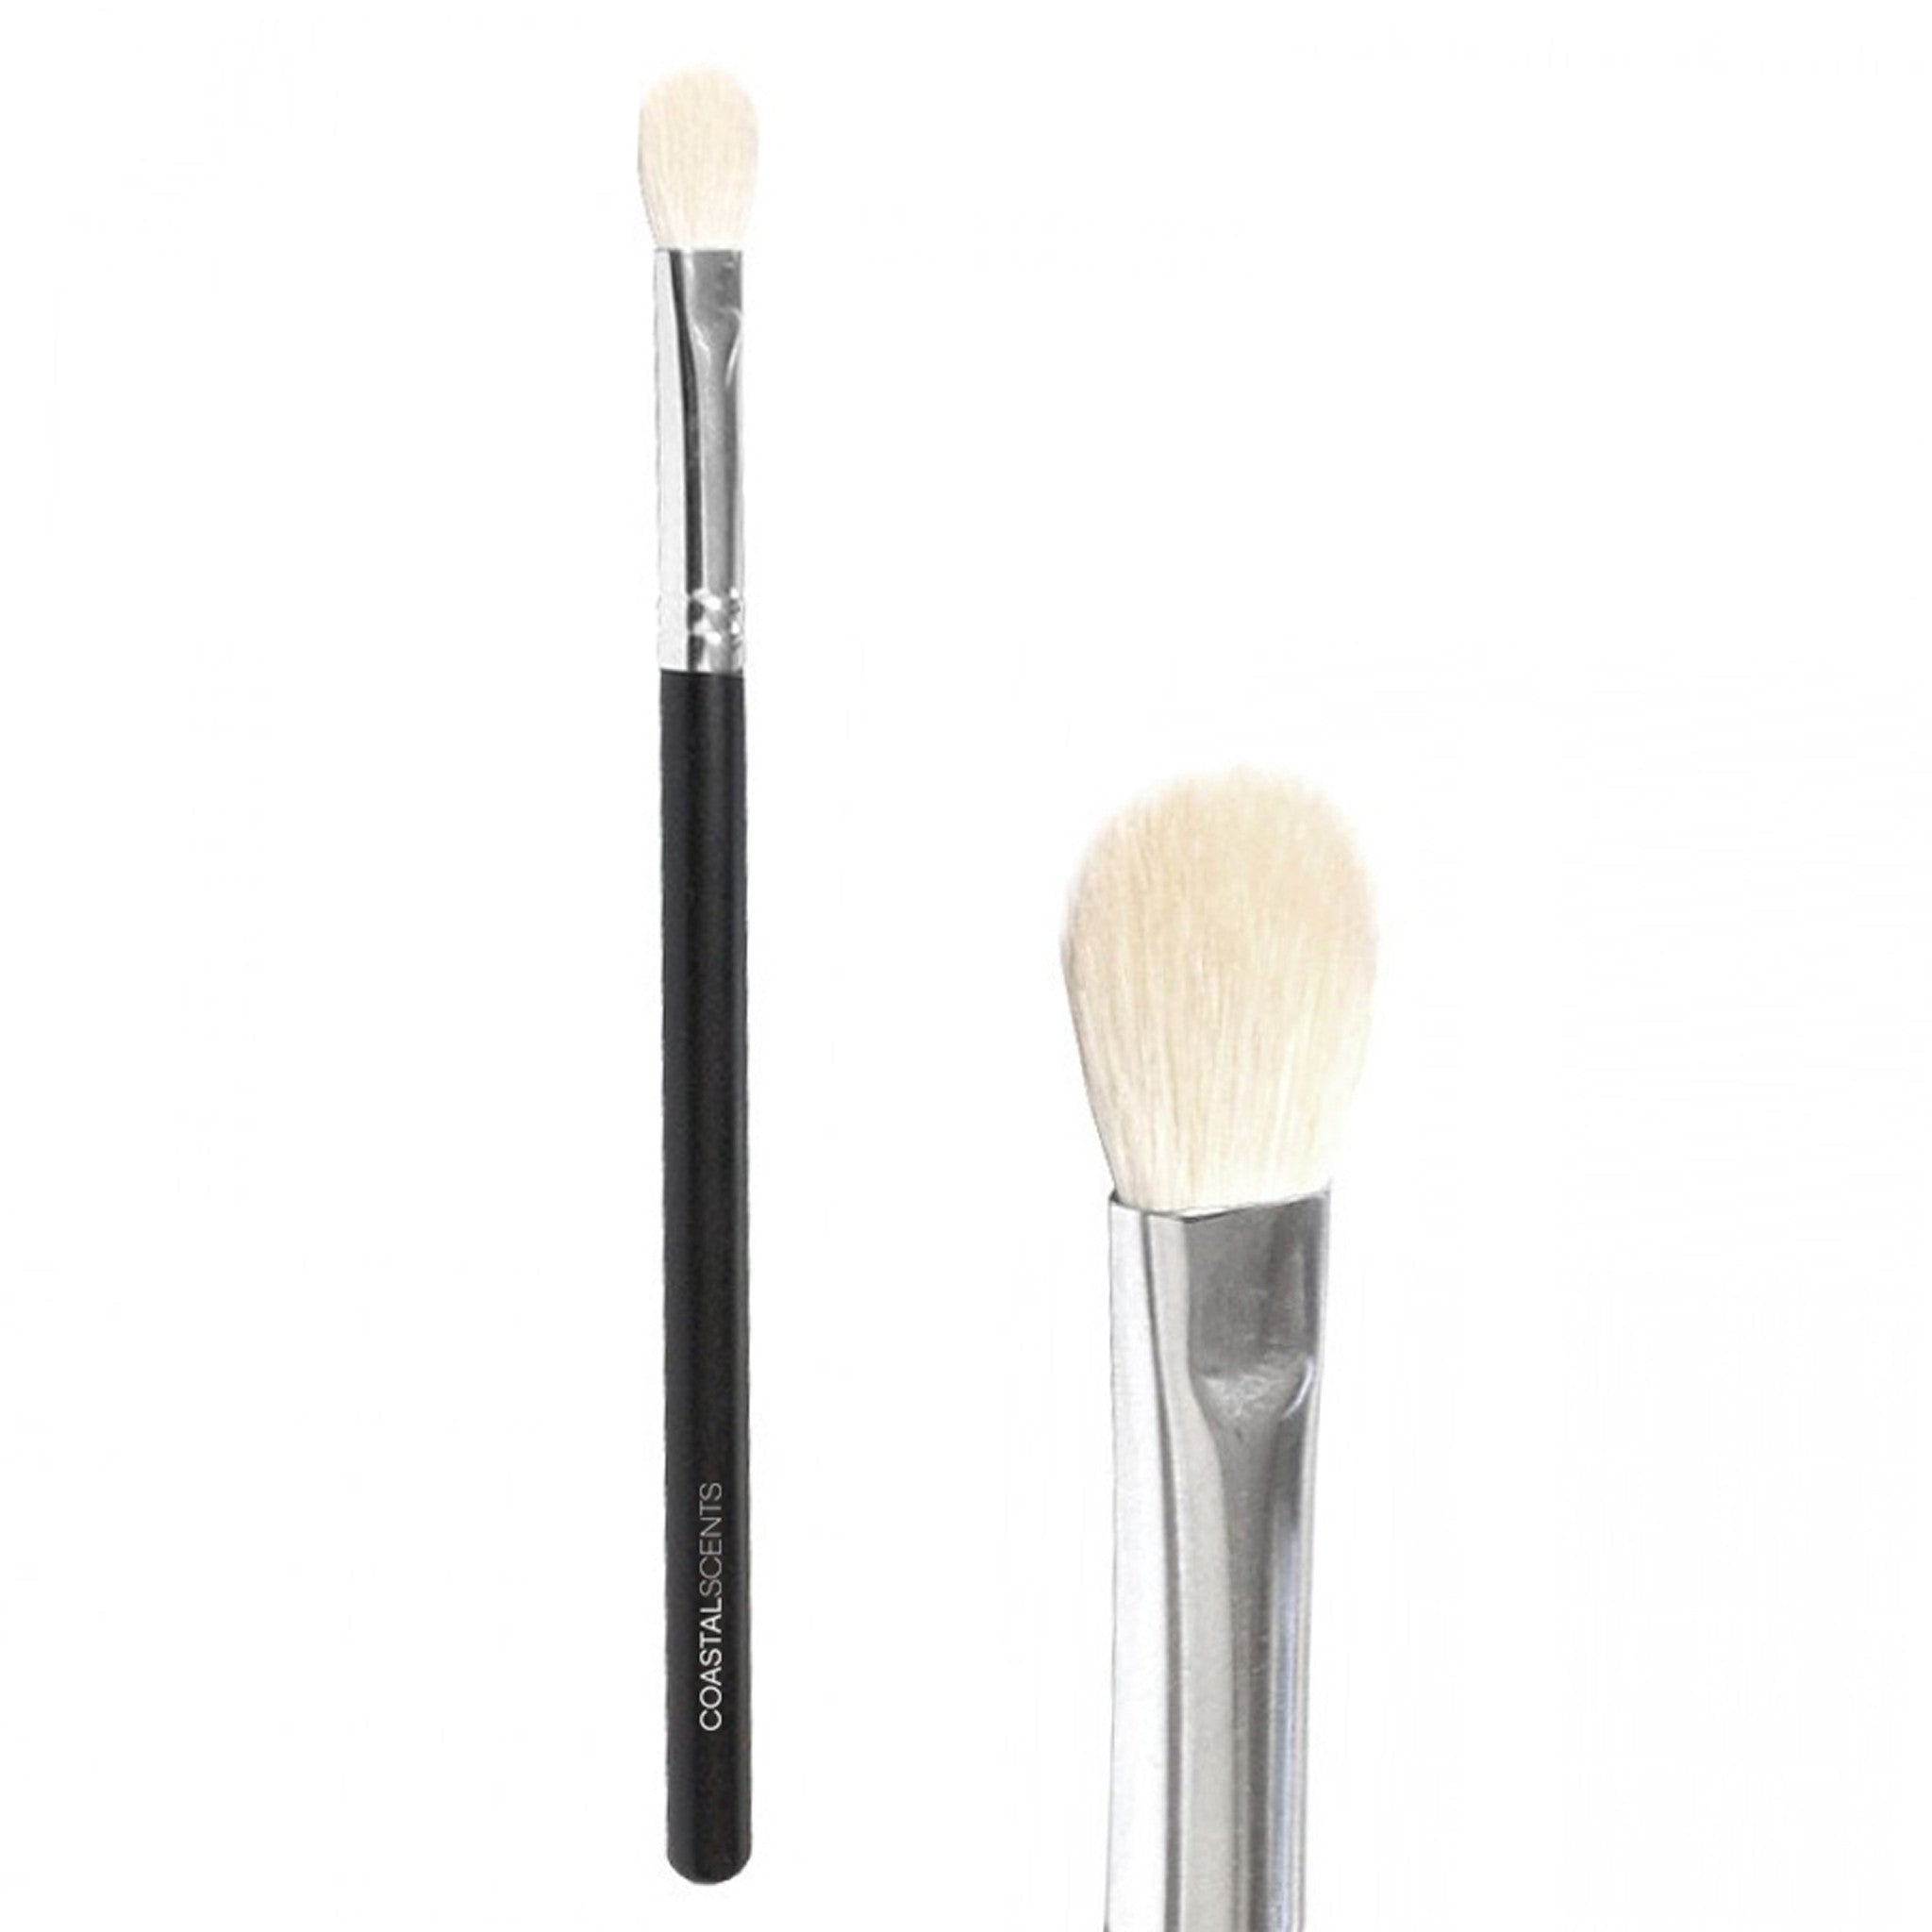 Pro Blending Fluff Brush